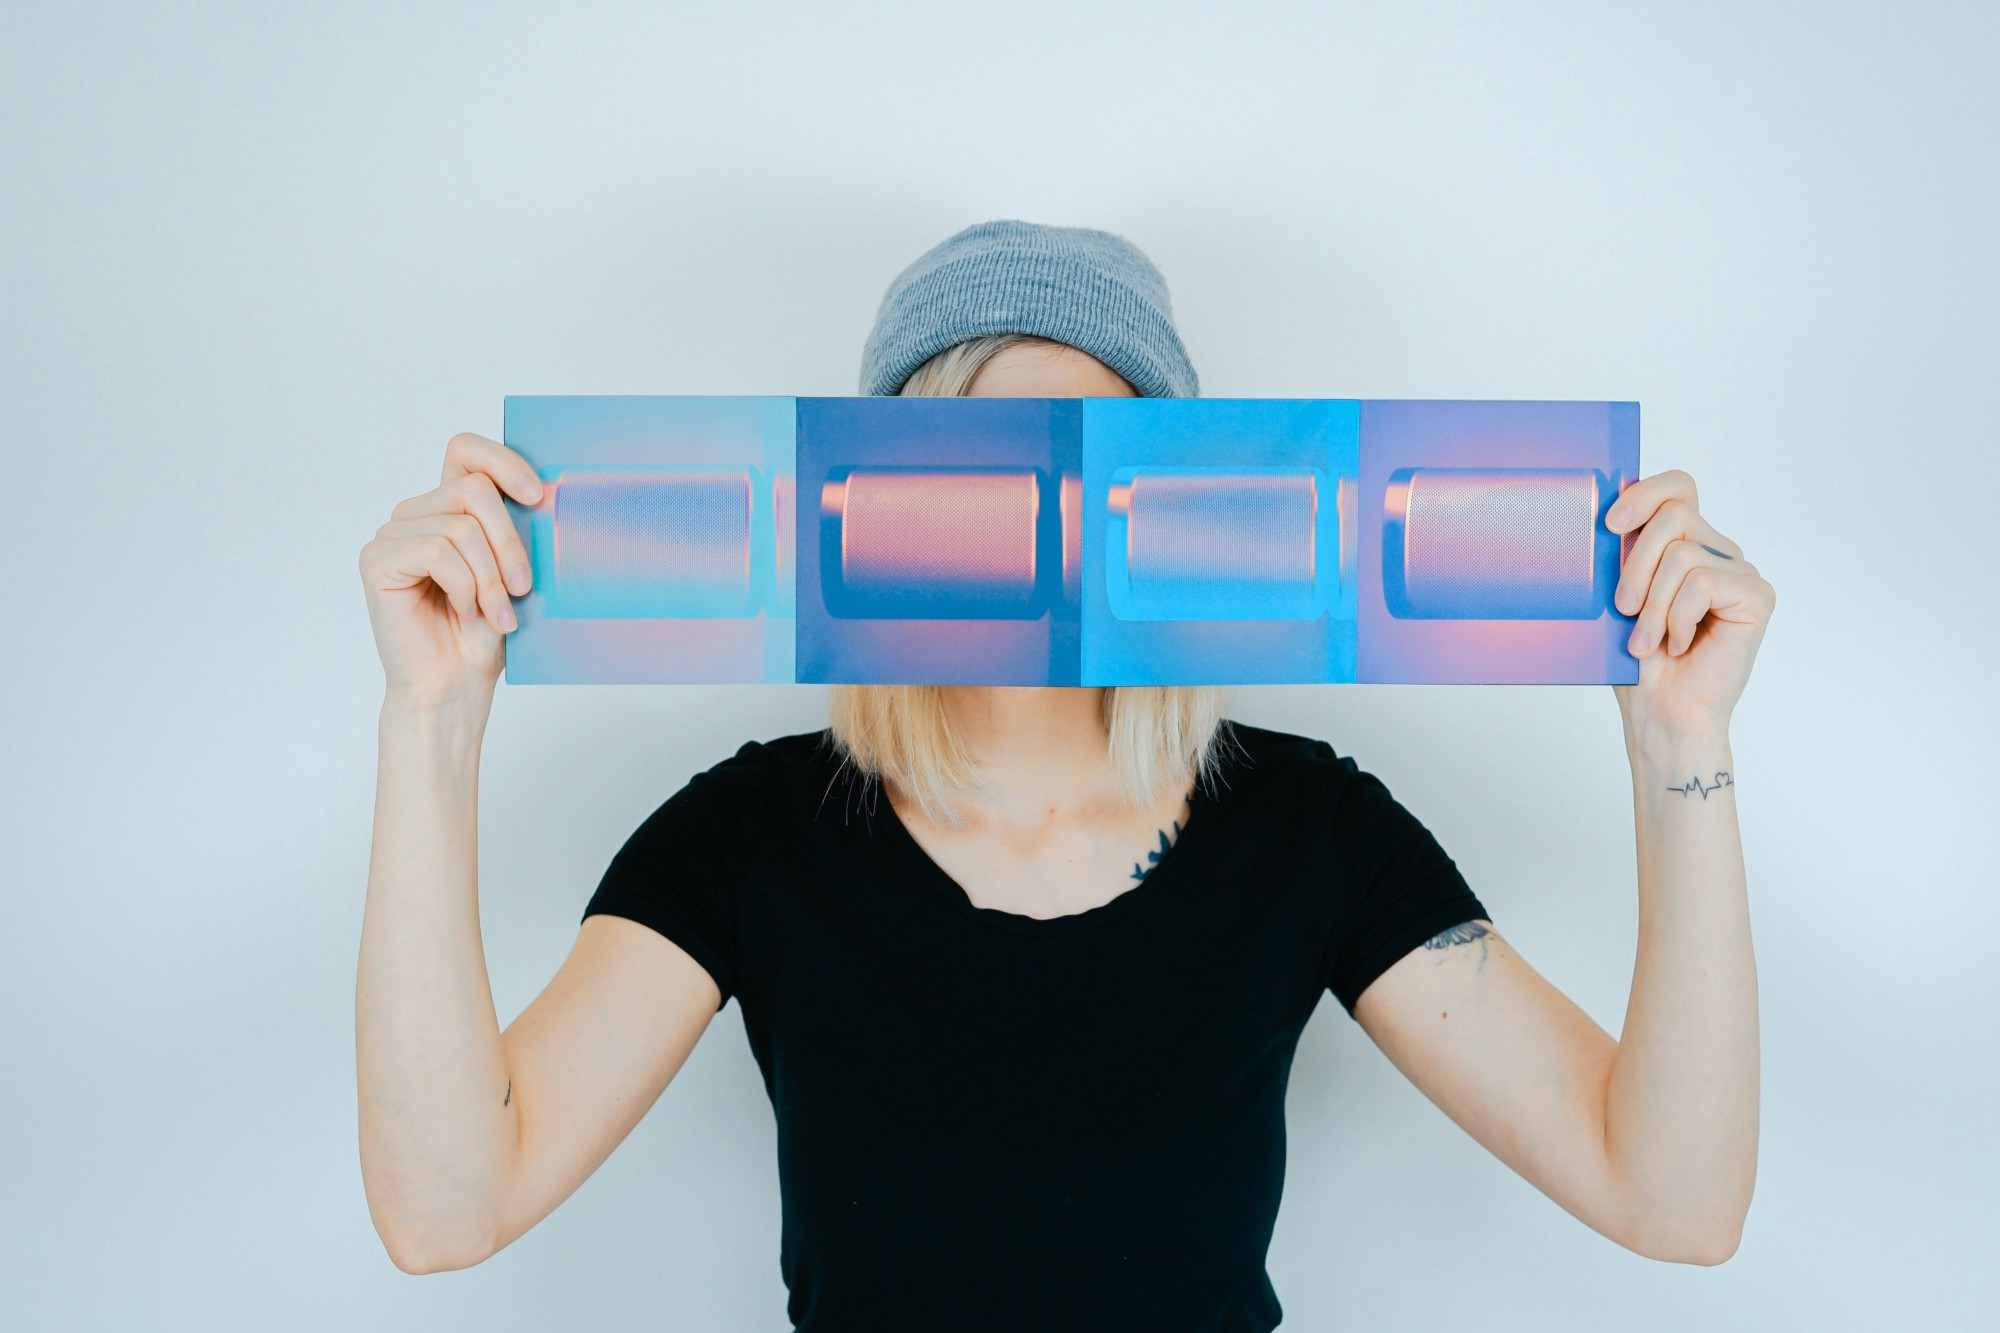 A woman holds art in front of her face. The art is four squares of varying blue shades.